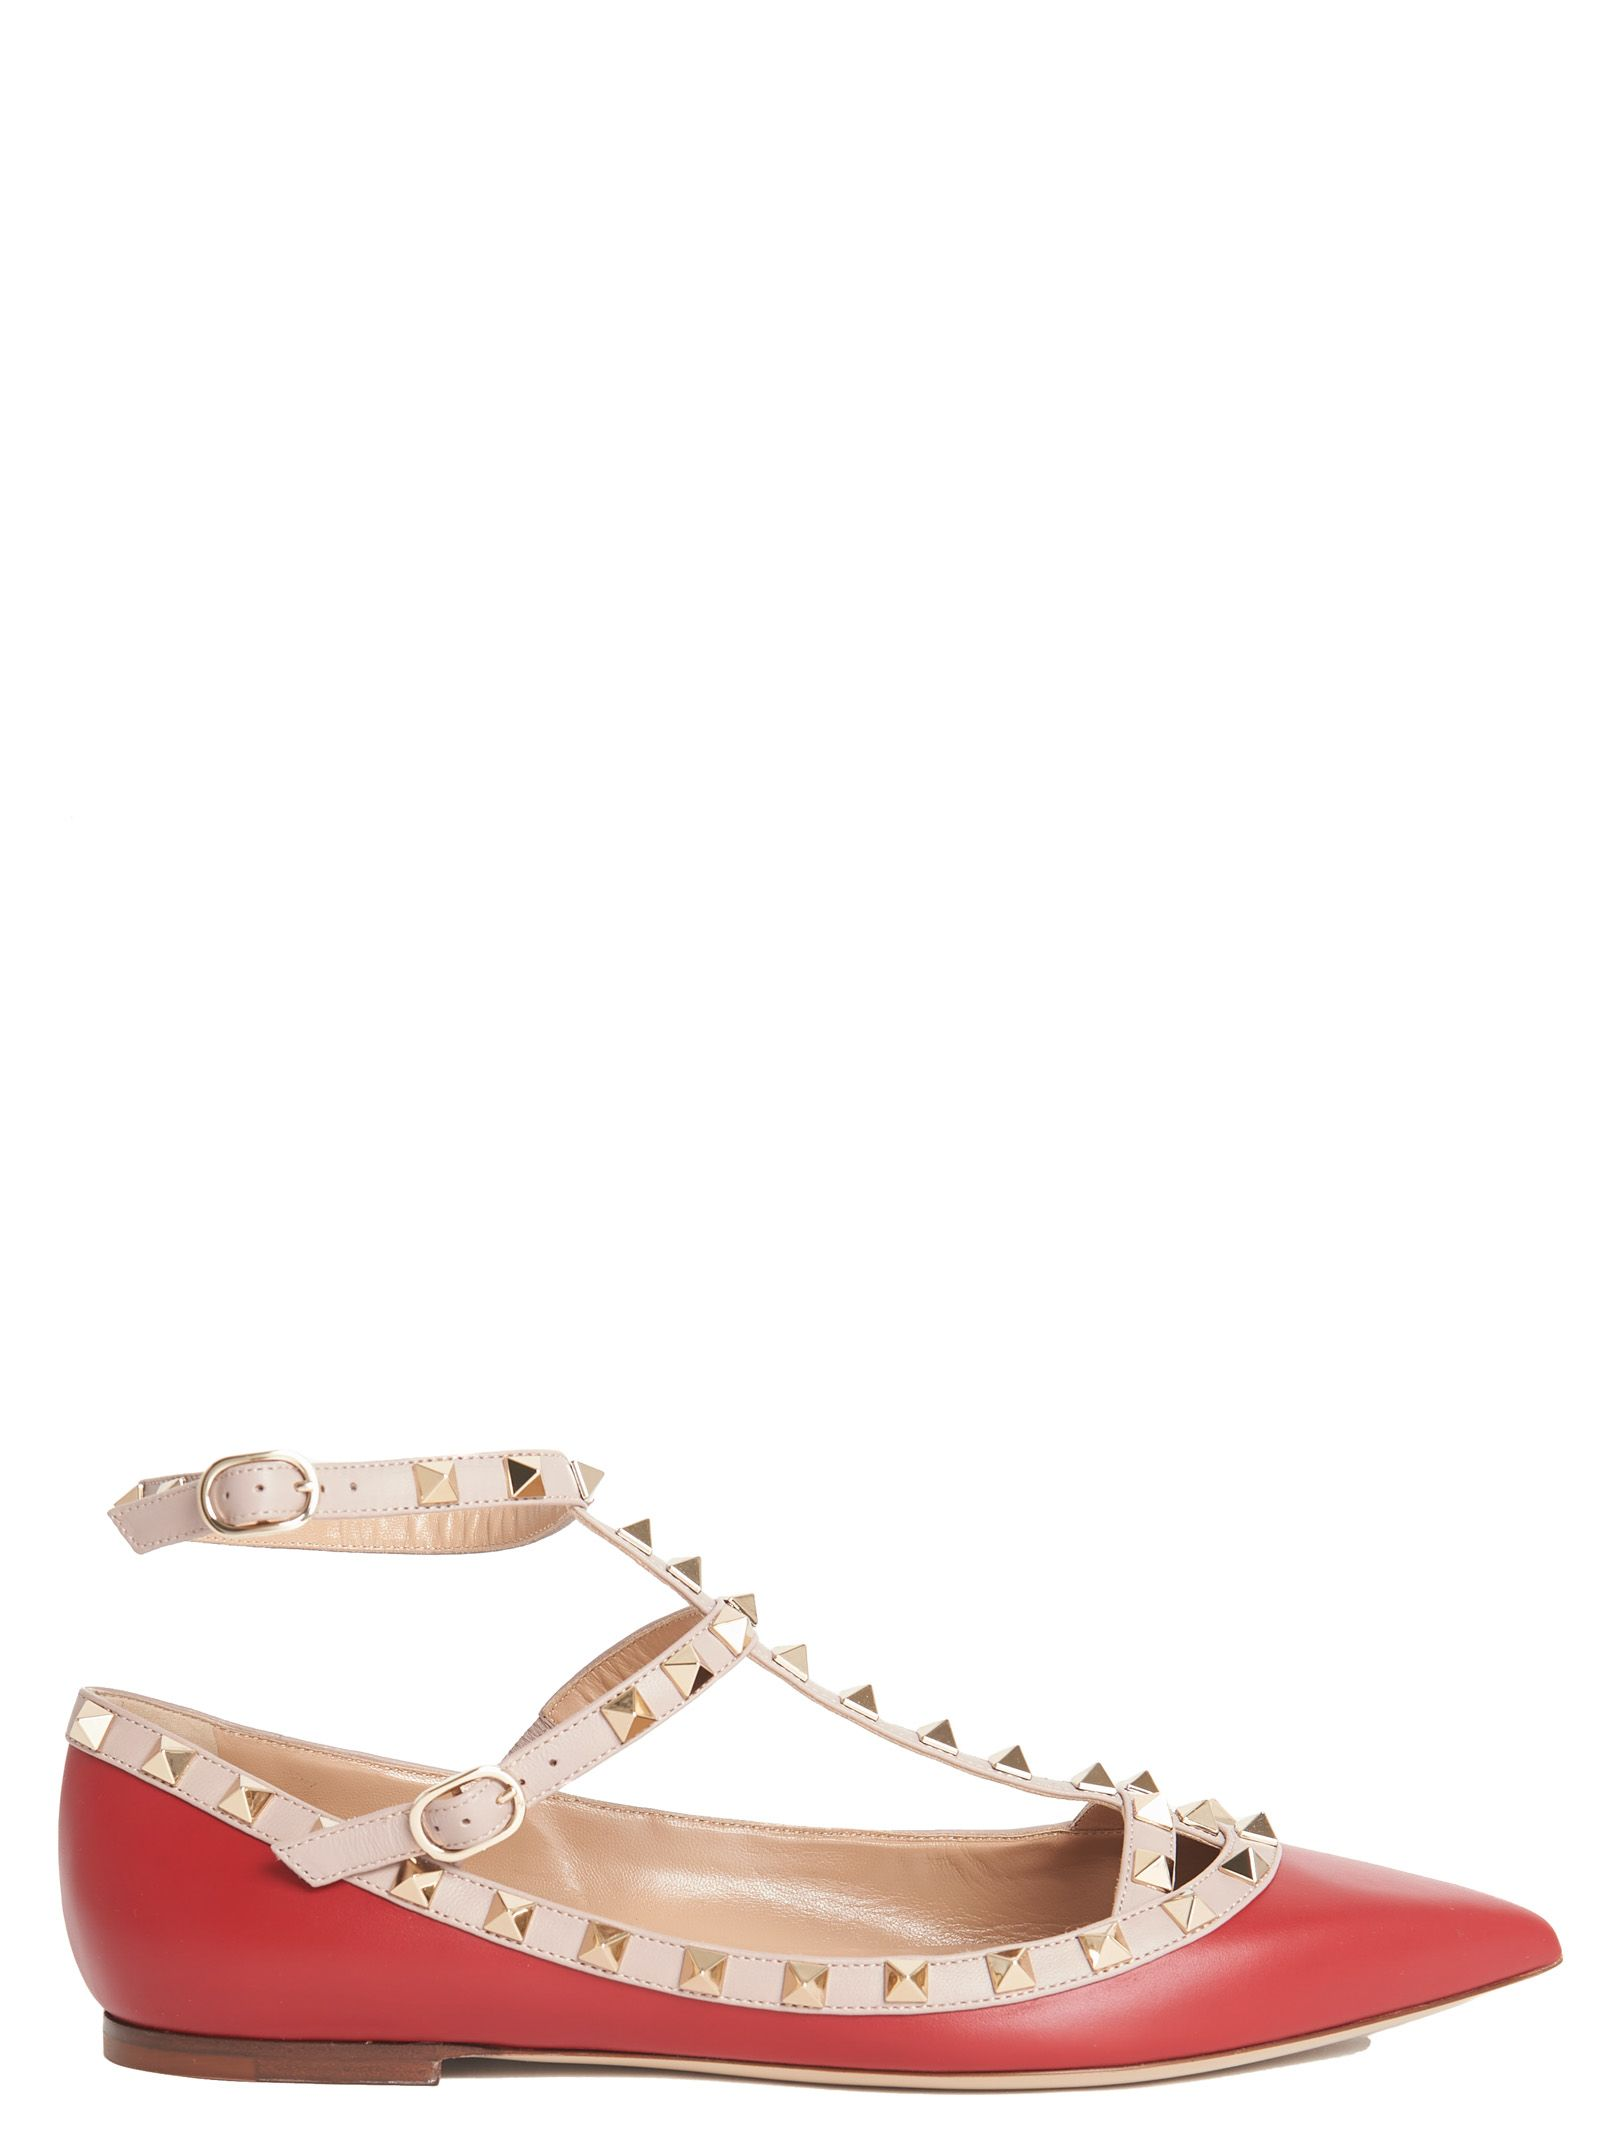 Valentino Garavani - Valentino Garavani Shoes - Red, Women ...